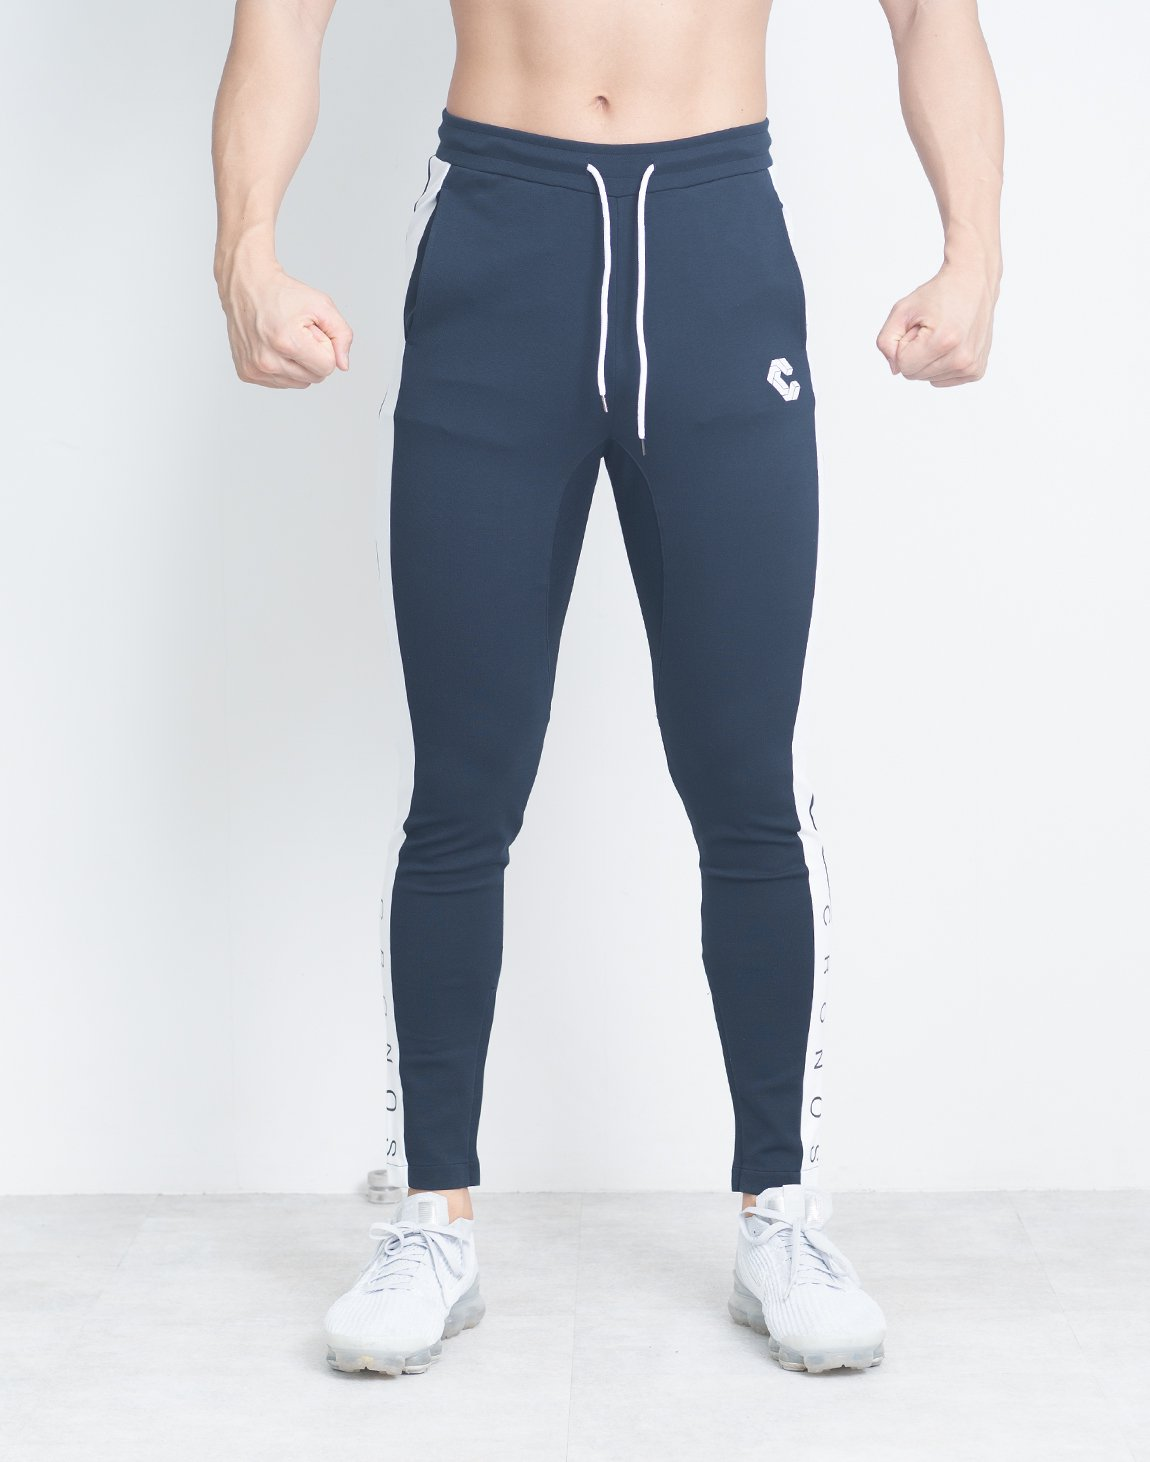 <img class='new_mark_img1' src='https://img.shop-pro.jp/img/new/icons1.gif' style='border:none;display:inline;margin:0px;padding:0px;width:auto;' />CRONOS SIDE FONT LOGO PANTS【NAVY】